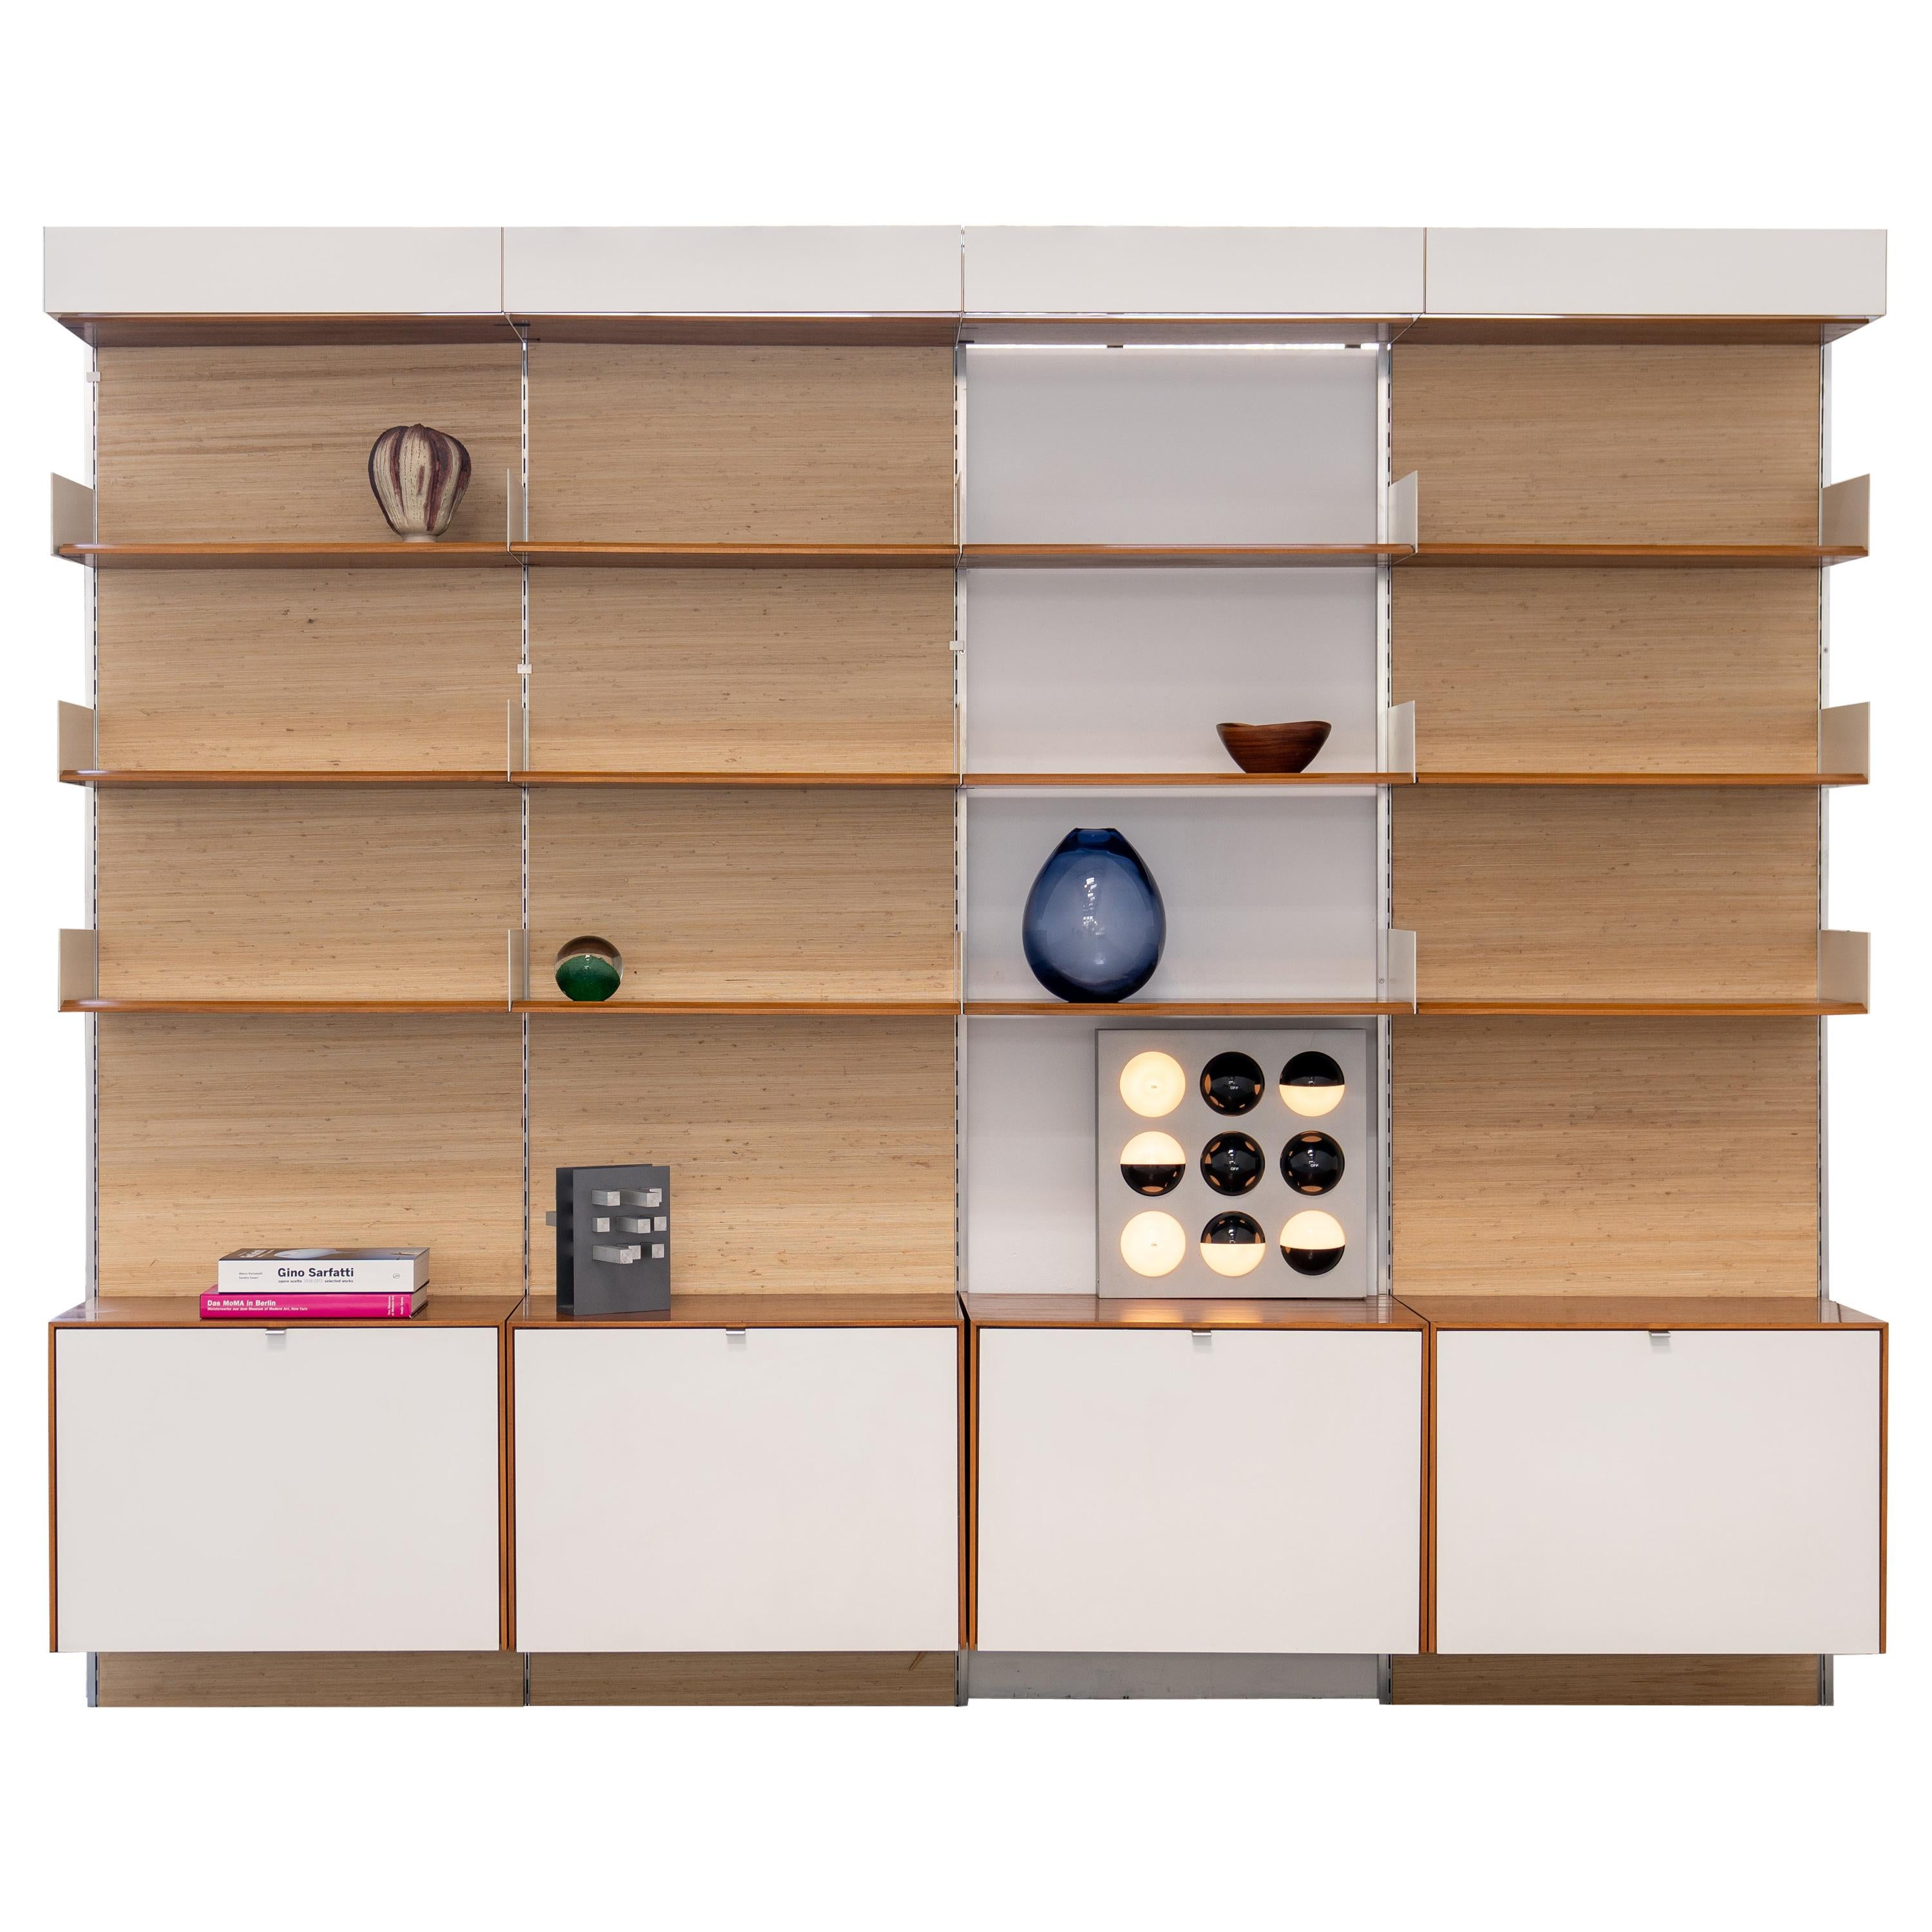 Florence Knoll, Rare Wall Unit, Teak & Seagrass, 1952 for Knoll International